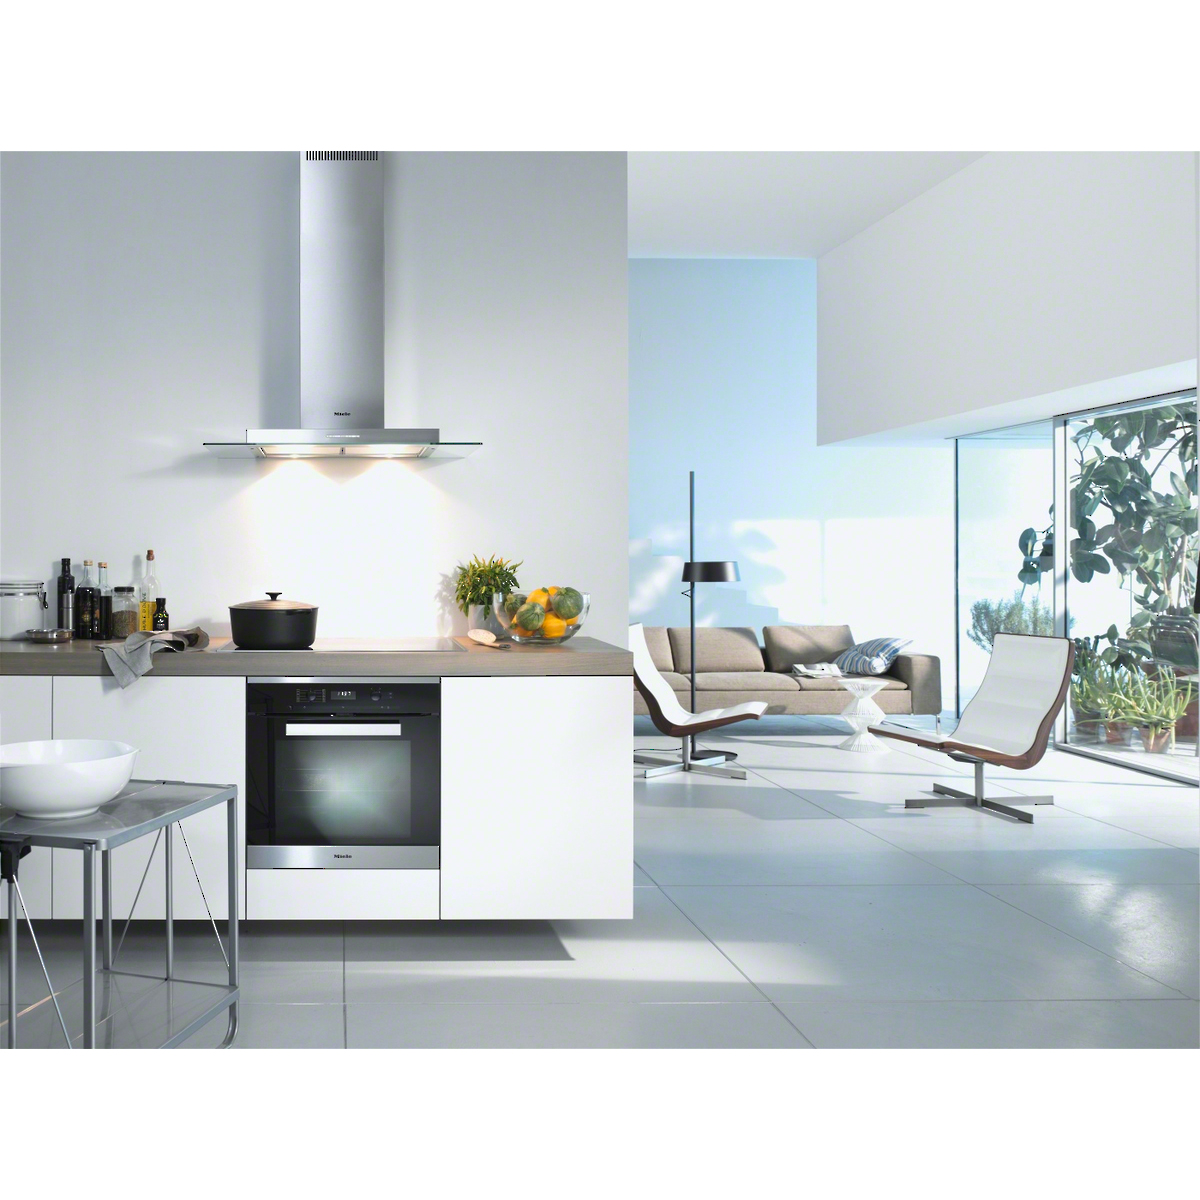 Miele H 6260 B Built-in oven - CMC Electric - Buy Electrical ...